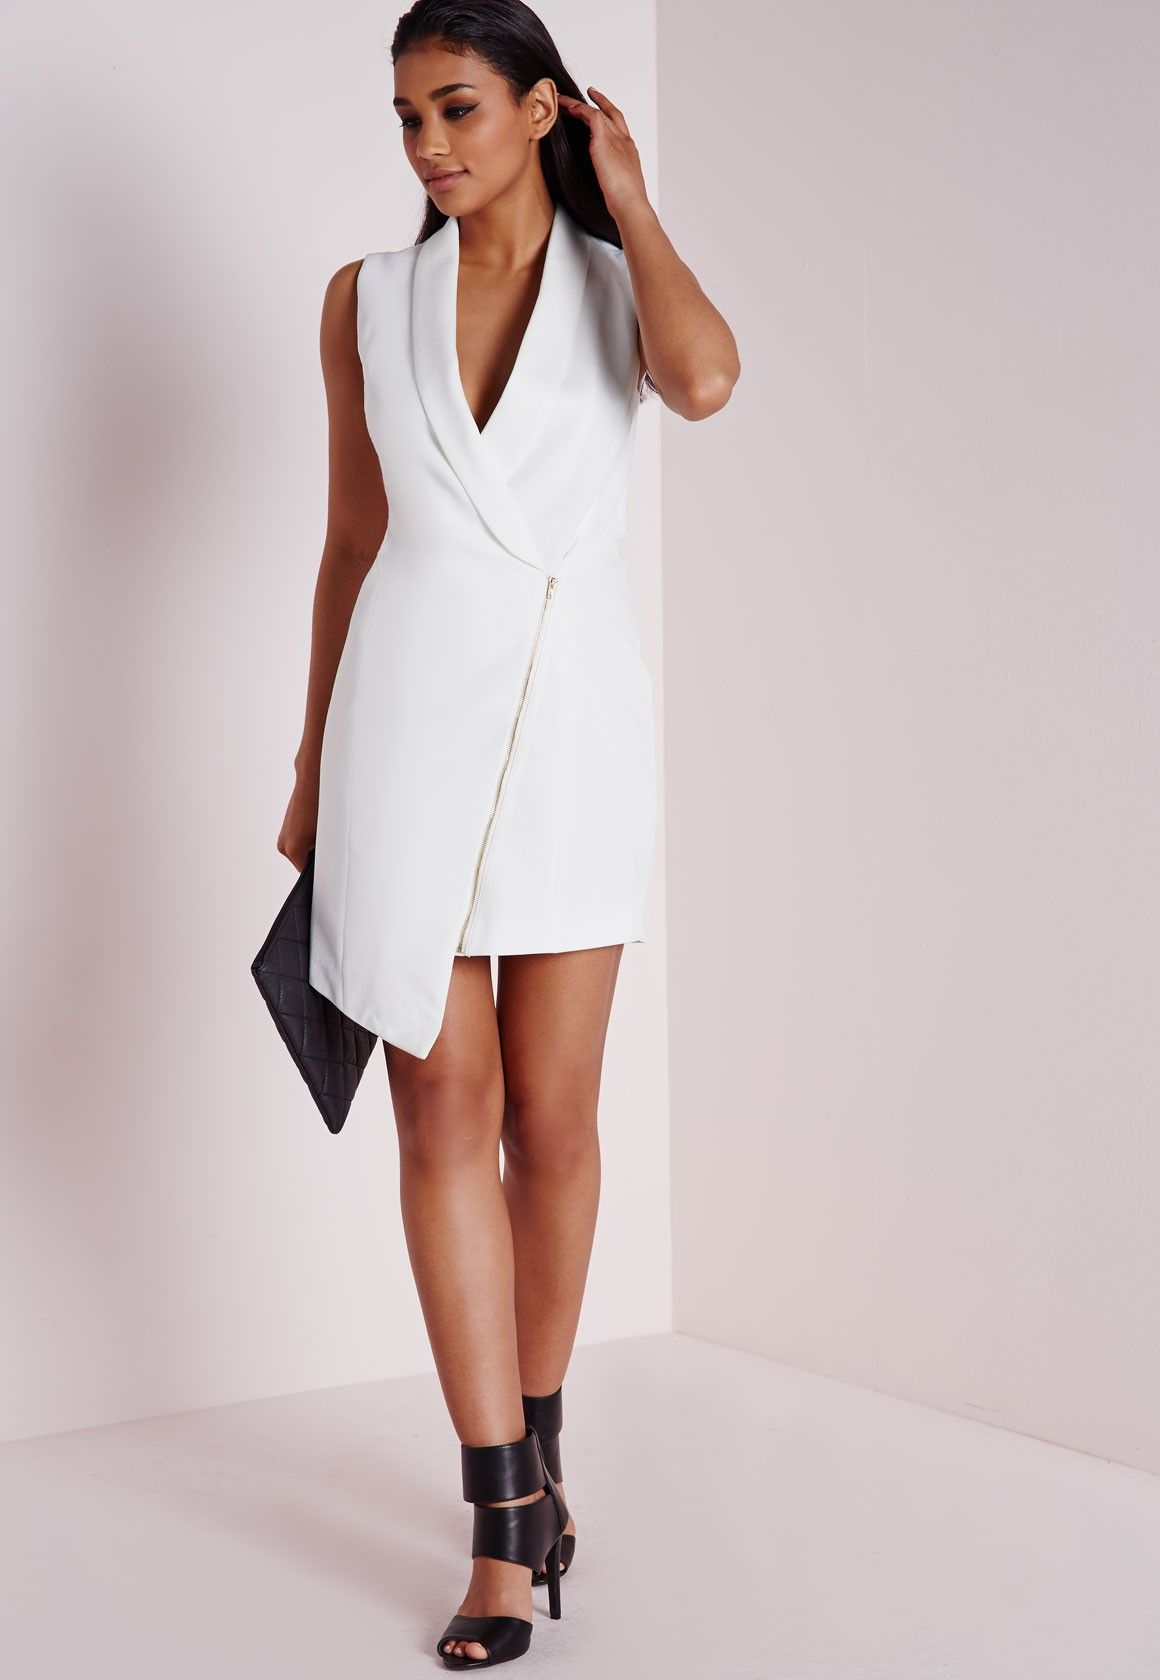 77c44c66127 Missguided - Crepe Sleeveless Blazer Dress White    trying to find  something like selena s trench dress